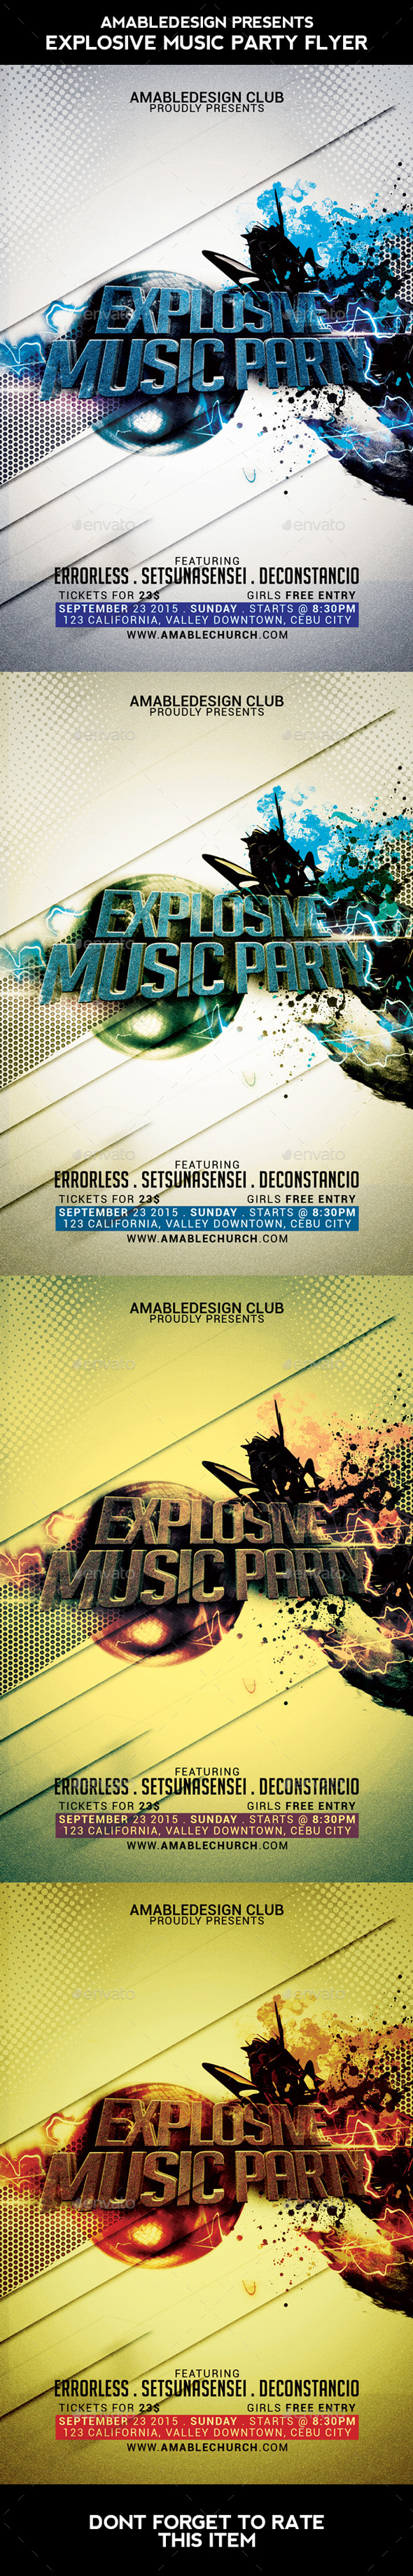 Explosive Music Party Flyer - Clubs & Parties Events